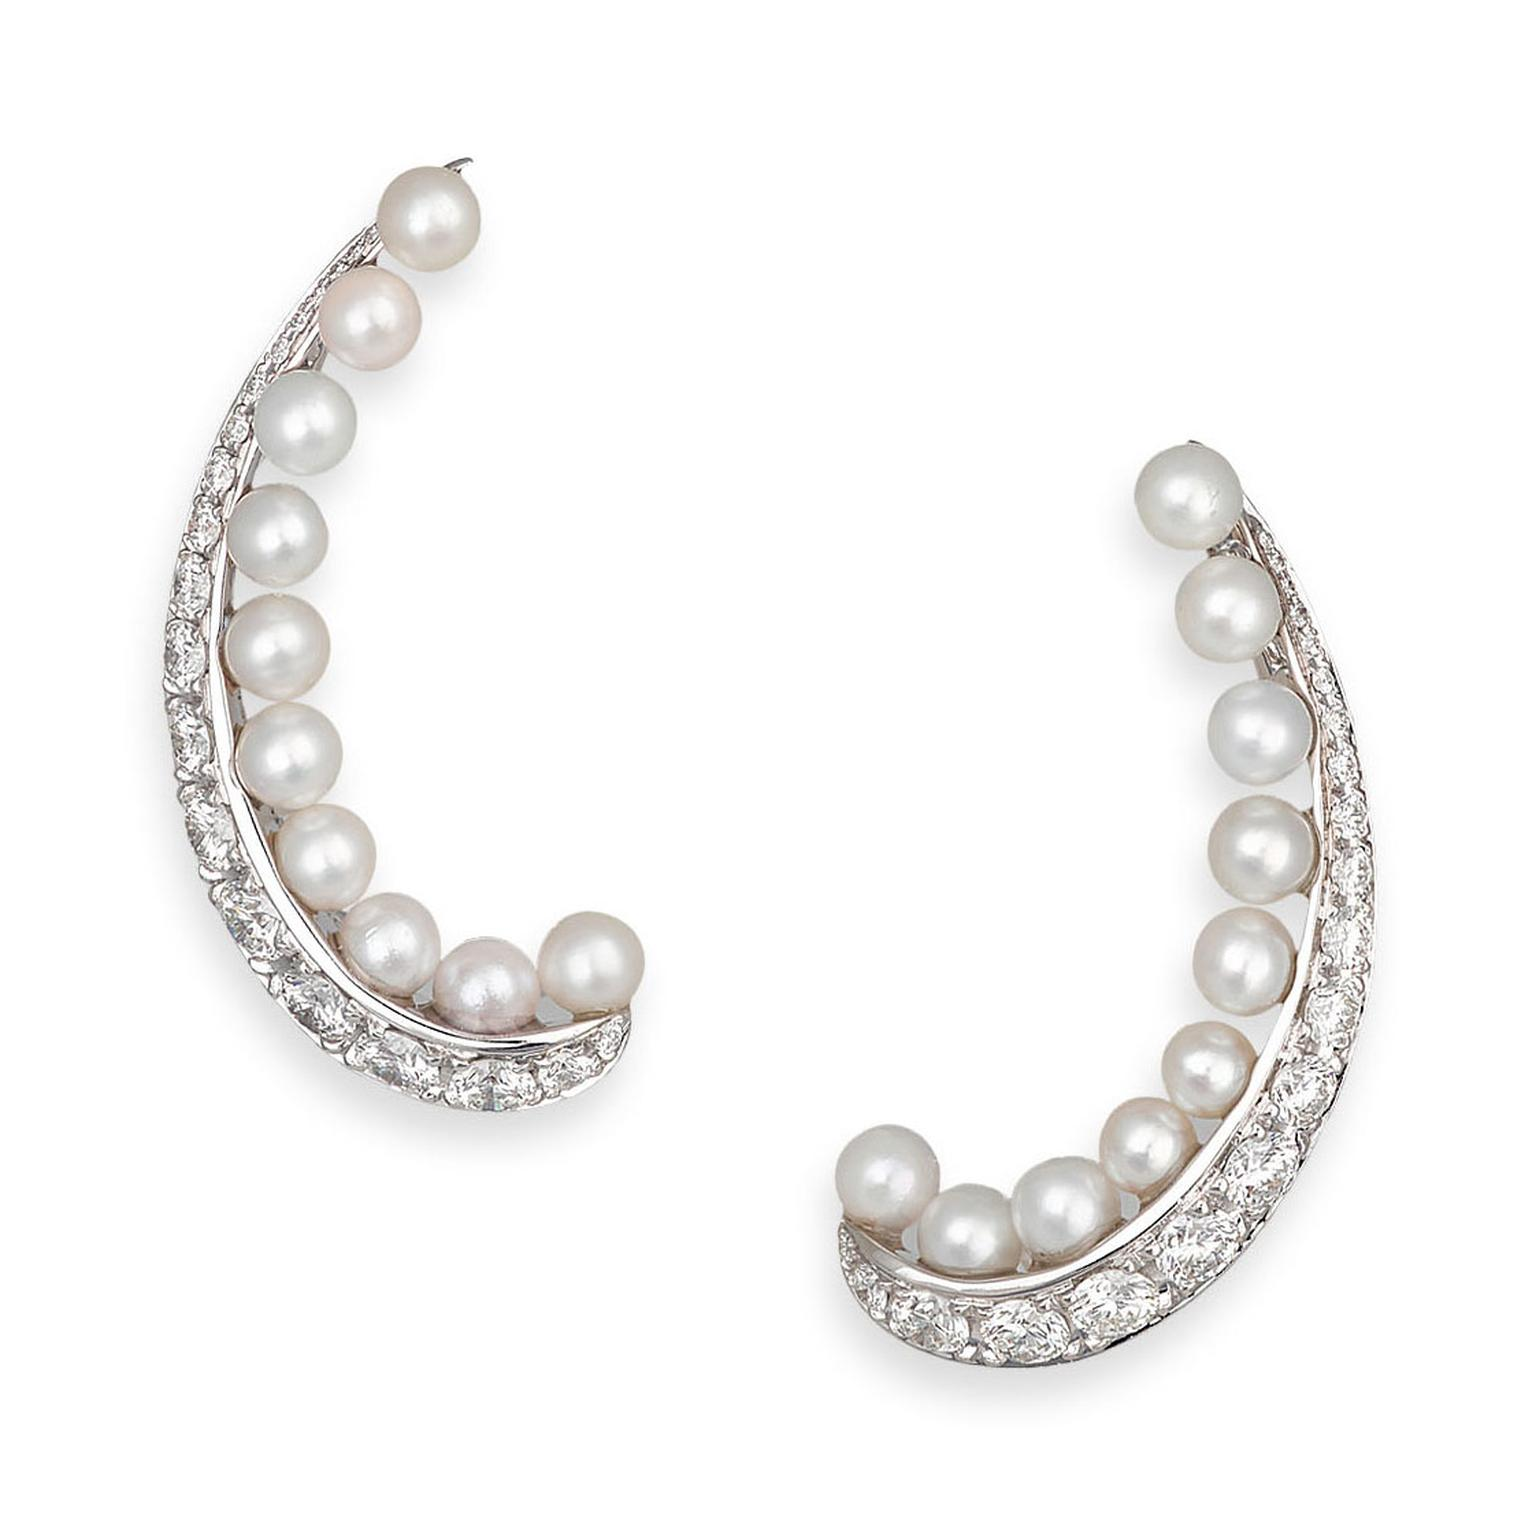 David Morris Pearl Rose Akoya Pearl ear cuffs